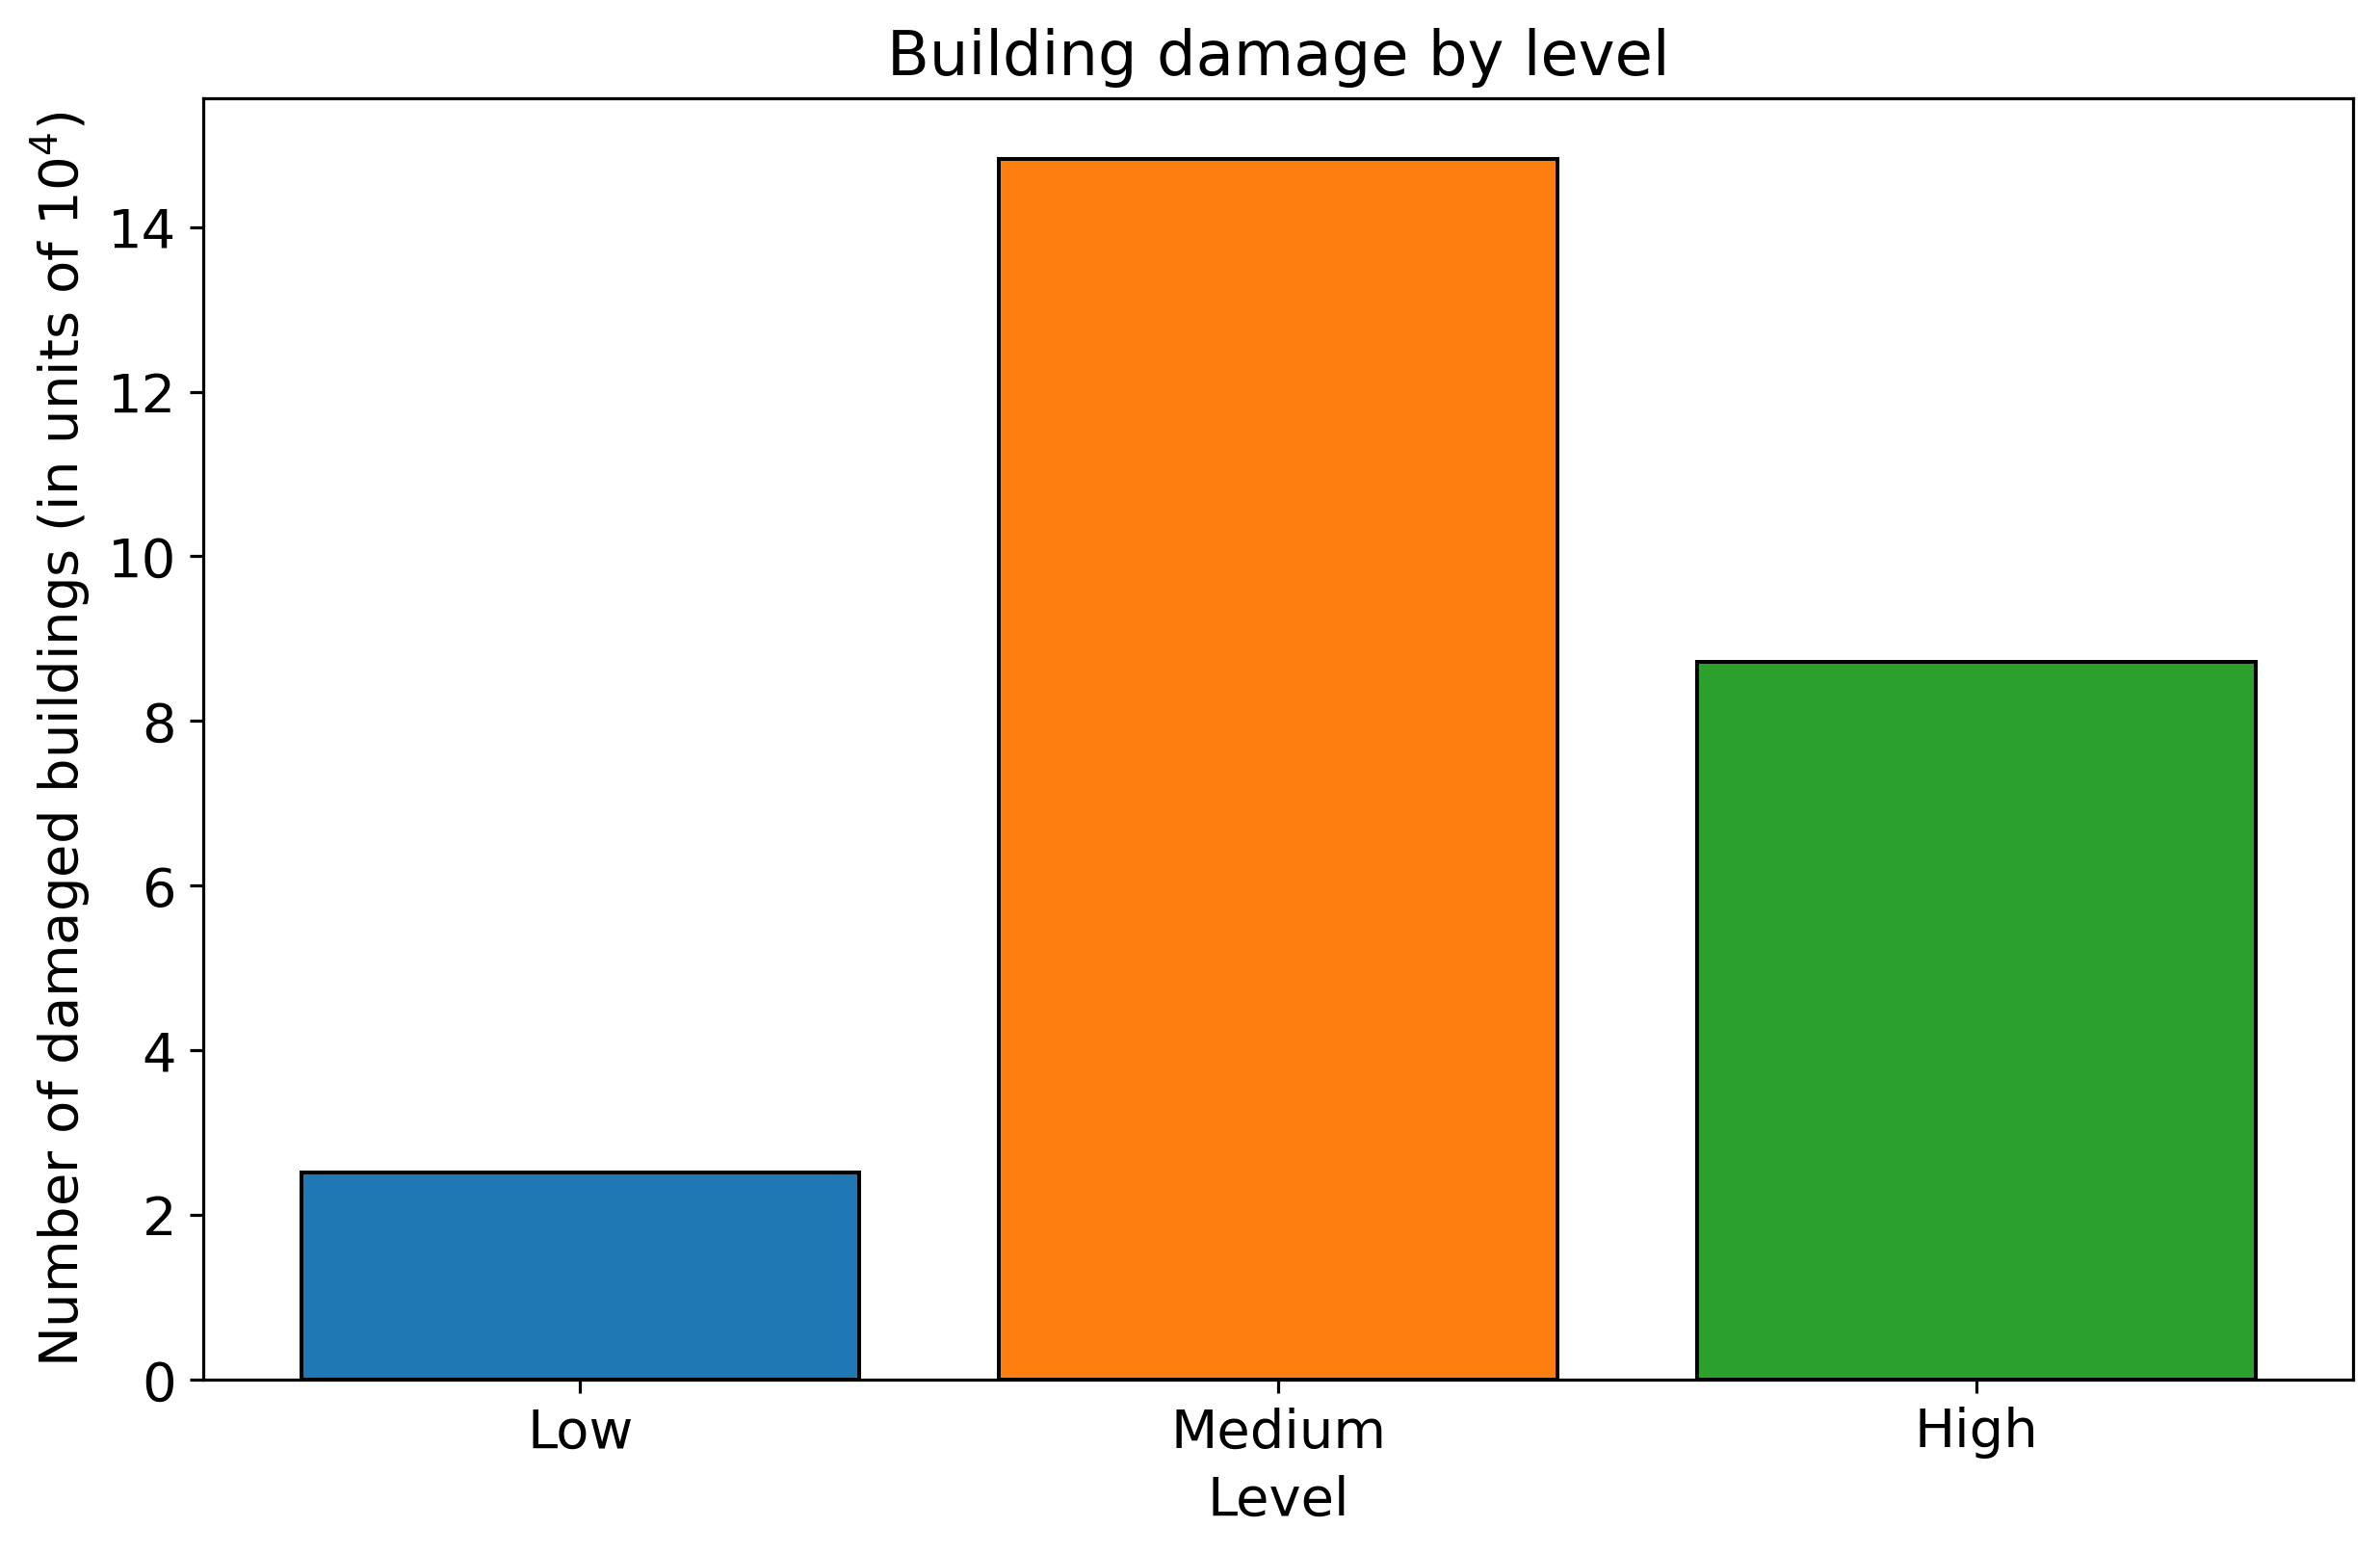 Building damage by level